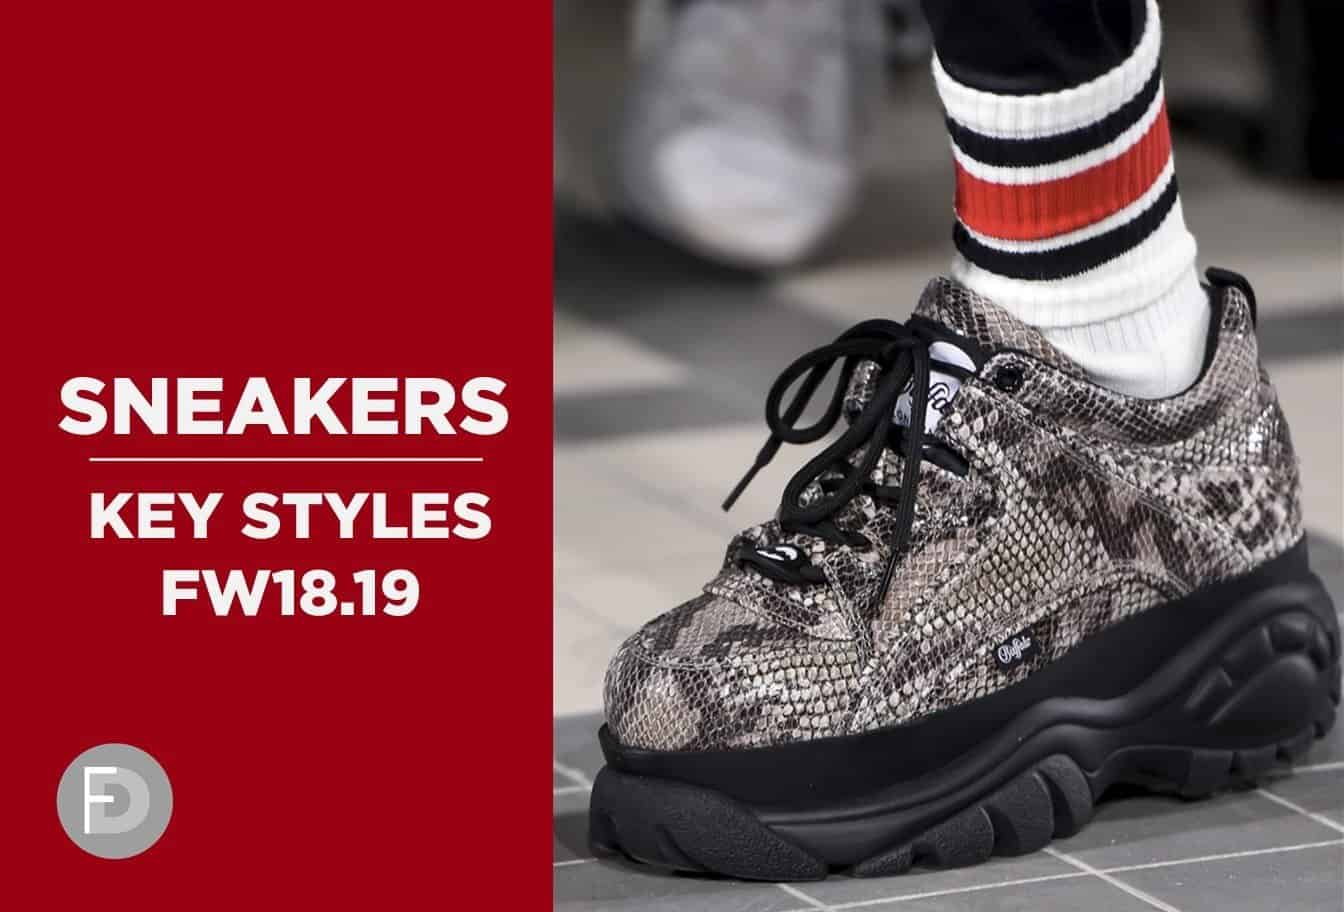 sneakers-new-styles-fw1819-2018